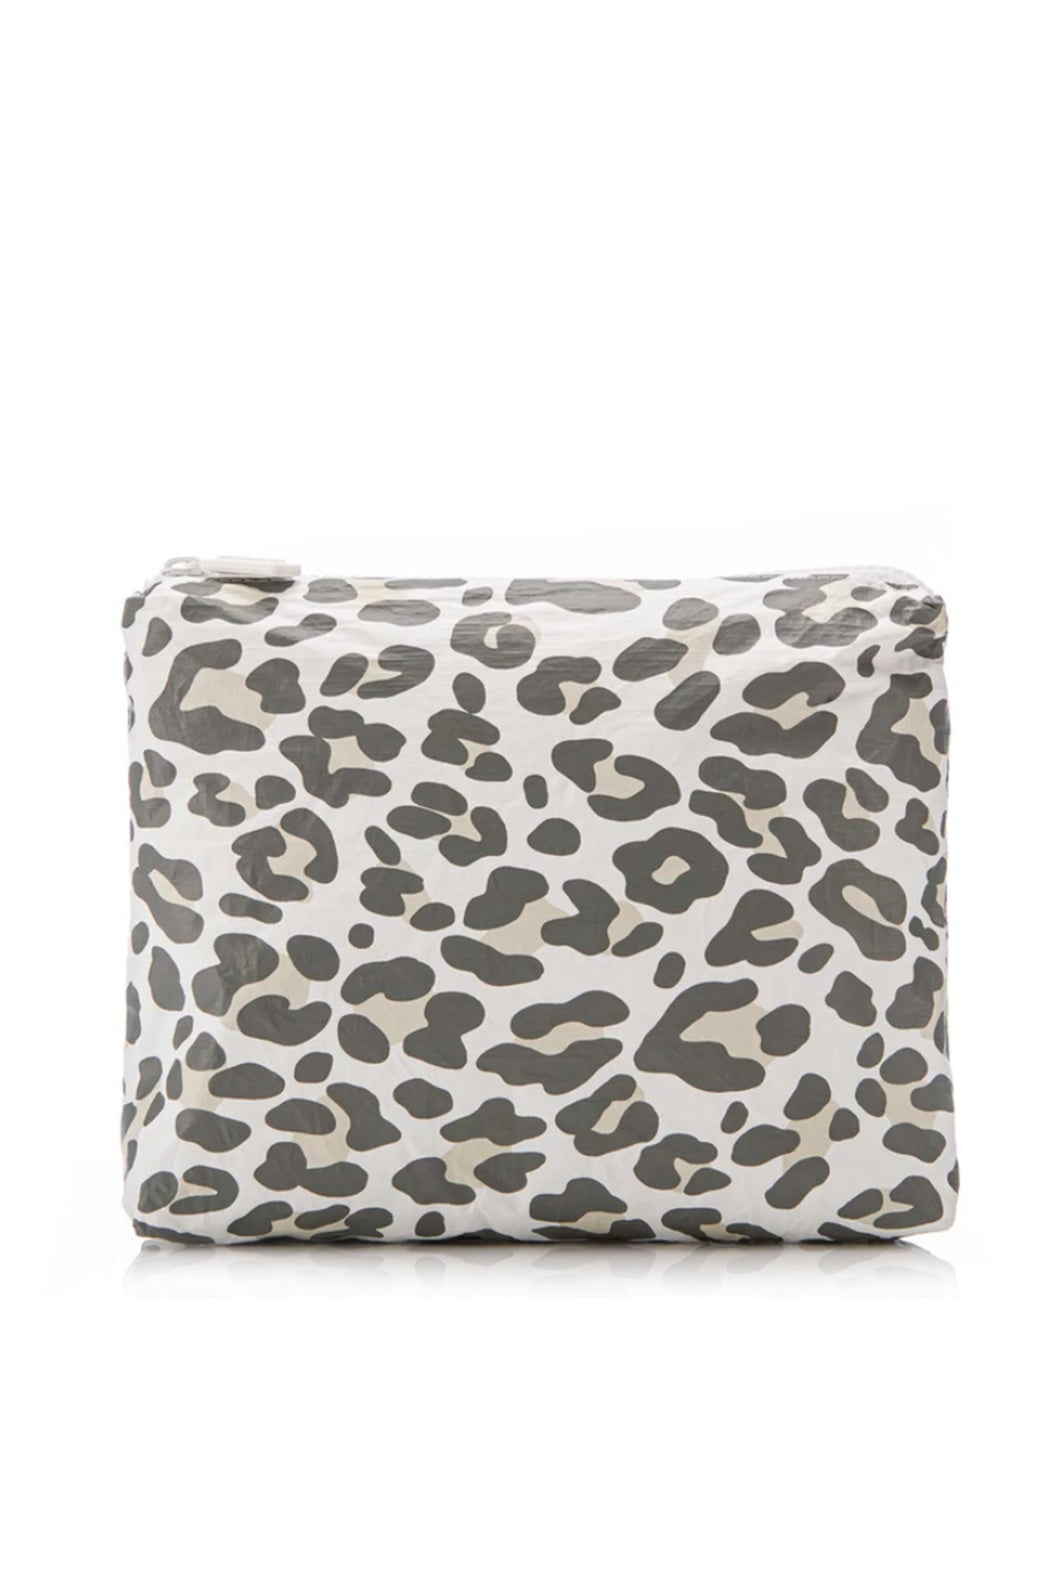 Snow Leopard Splash Proof Small Pouch